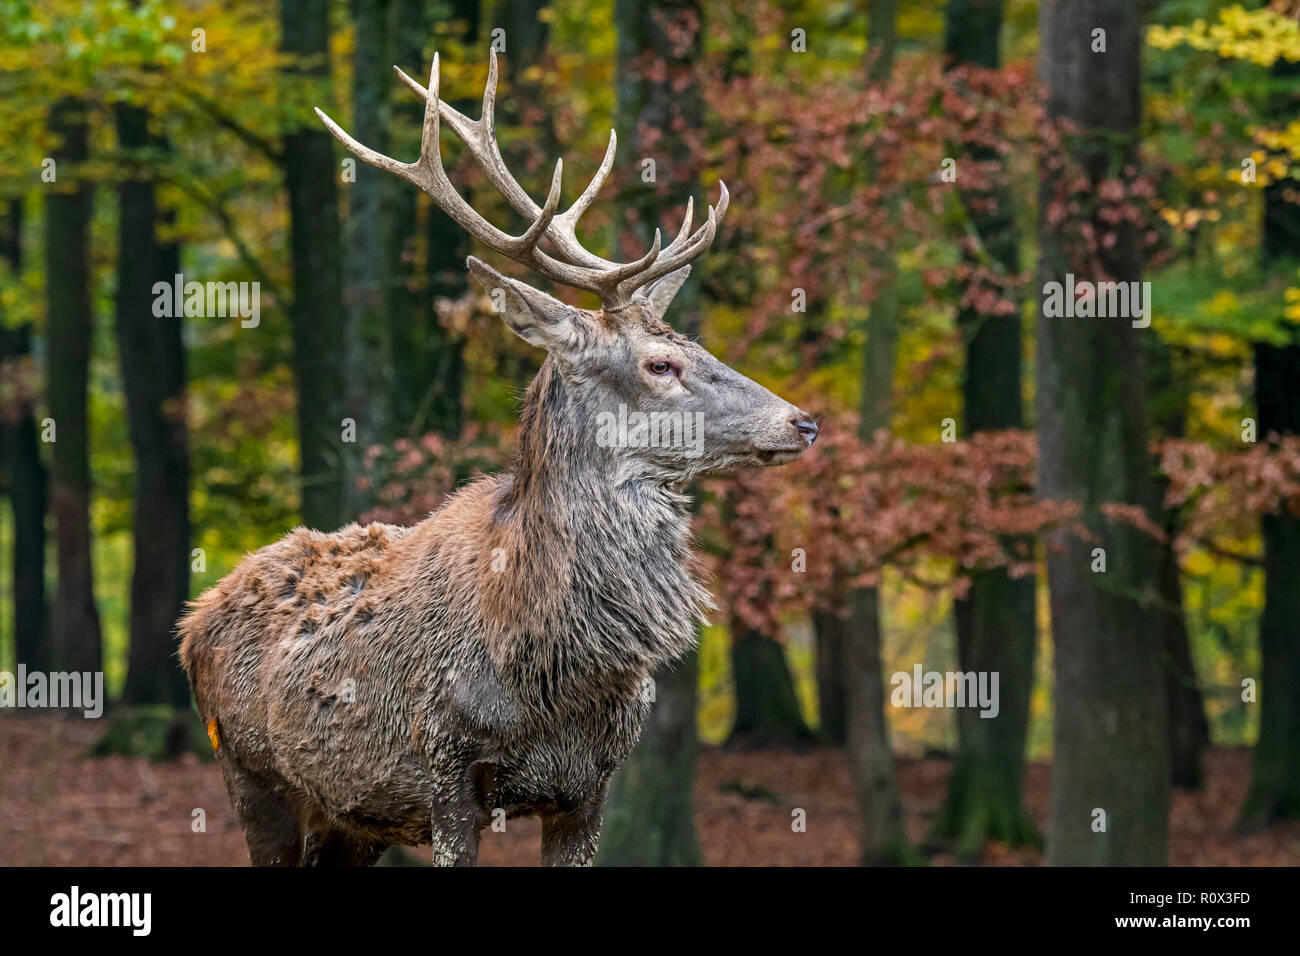 Young red deer (Cervus elaphus) stag / male in autumn forest in the Ardennes during the hunting season - Stock Image